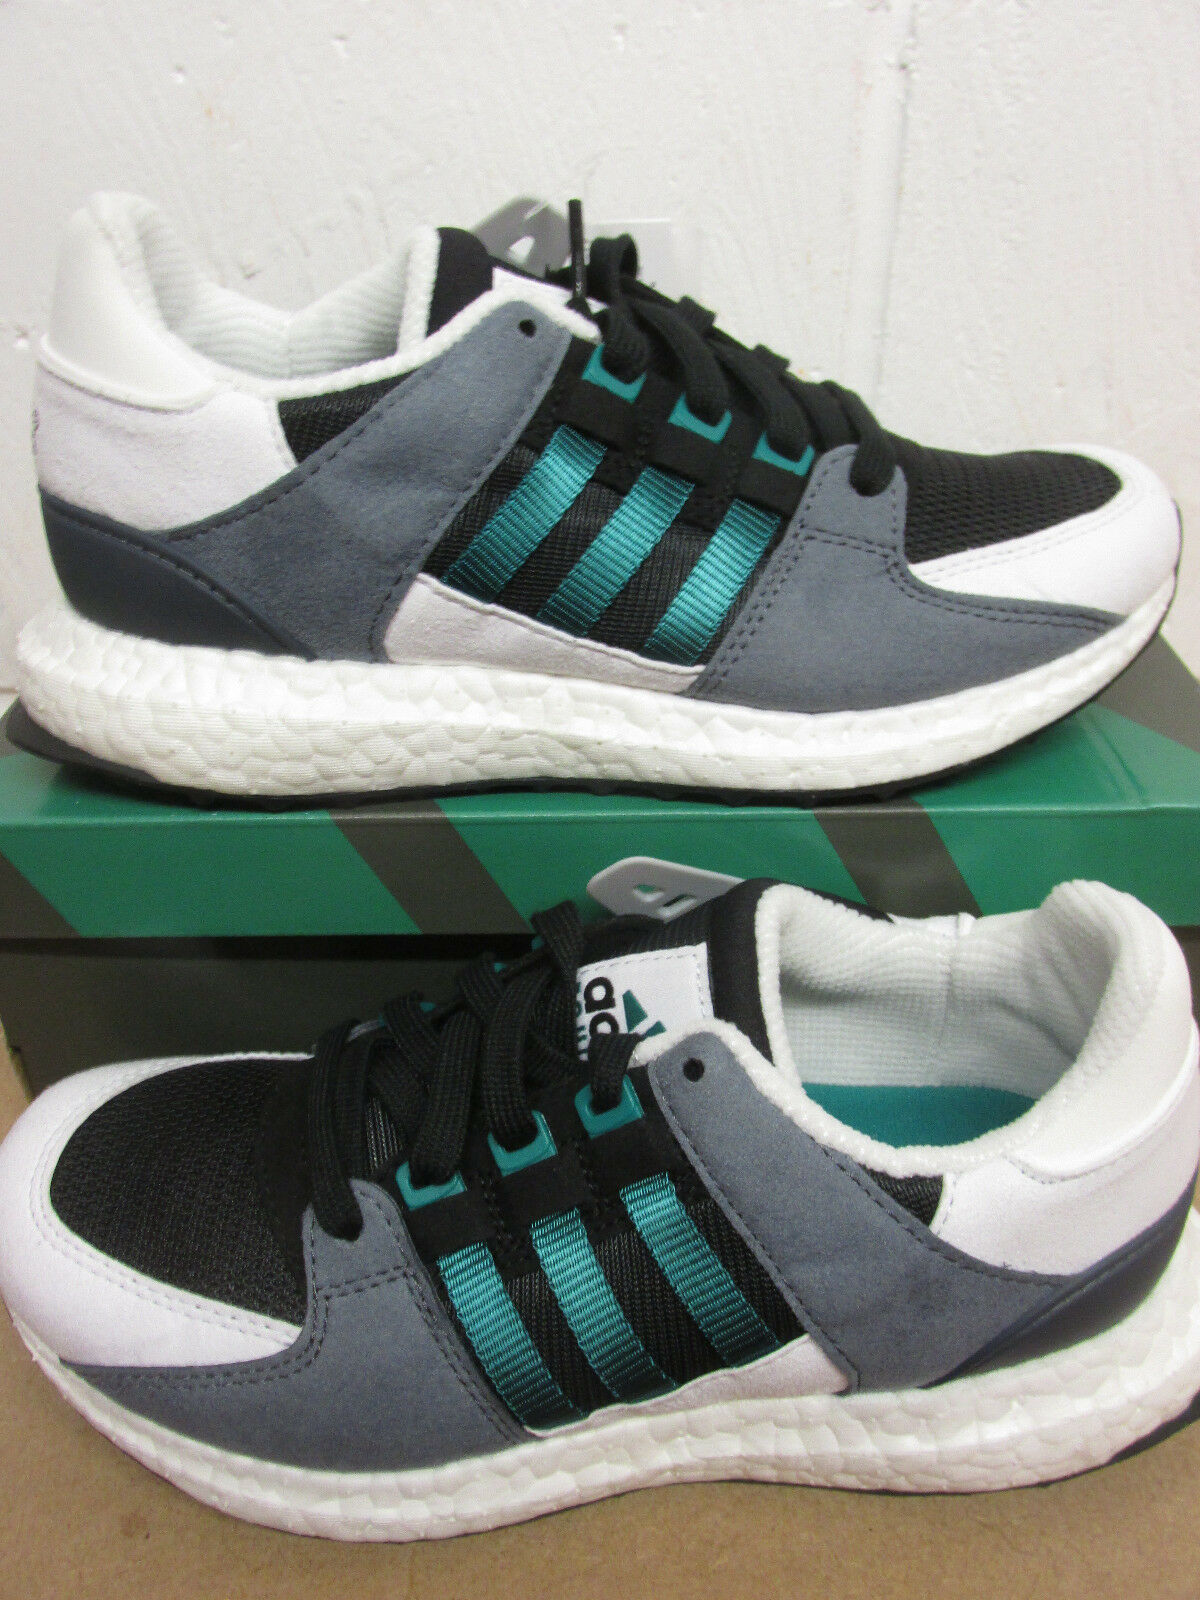 Adidas Originals Equipment Supprt 93/16 Boost Running Trainers S79111 Sneakers